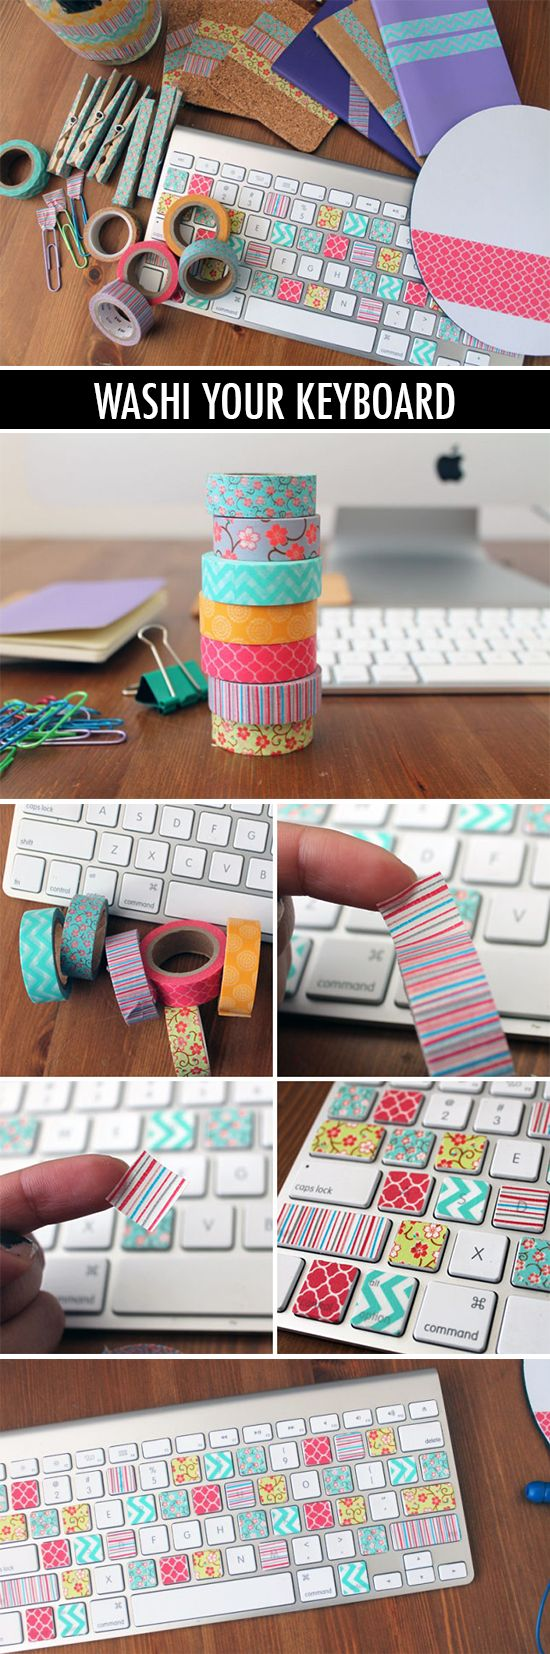 *Washi Tape Envie d'essayer !